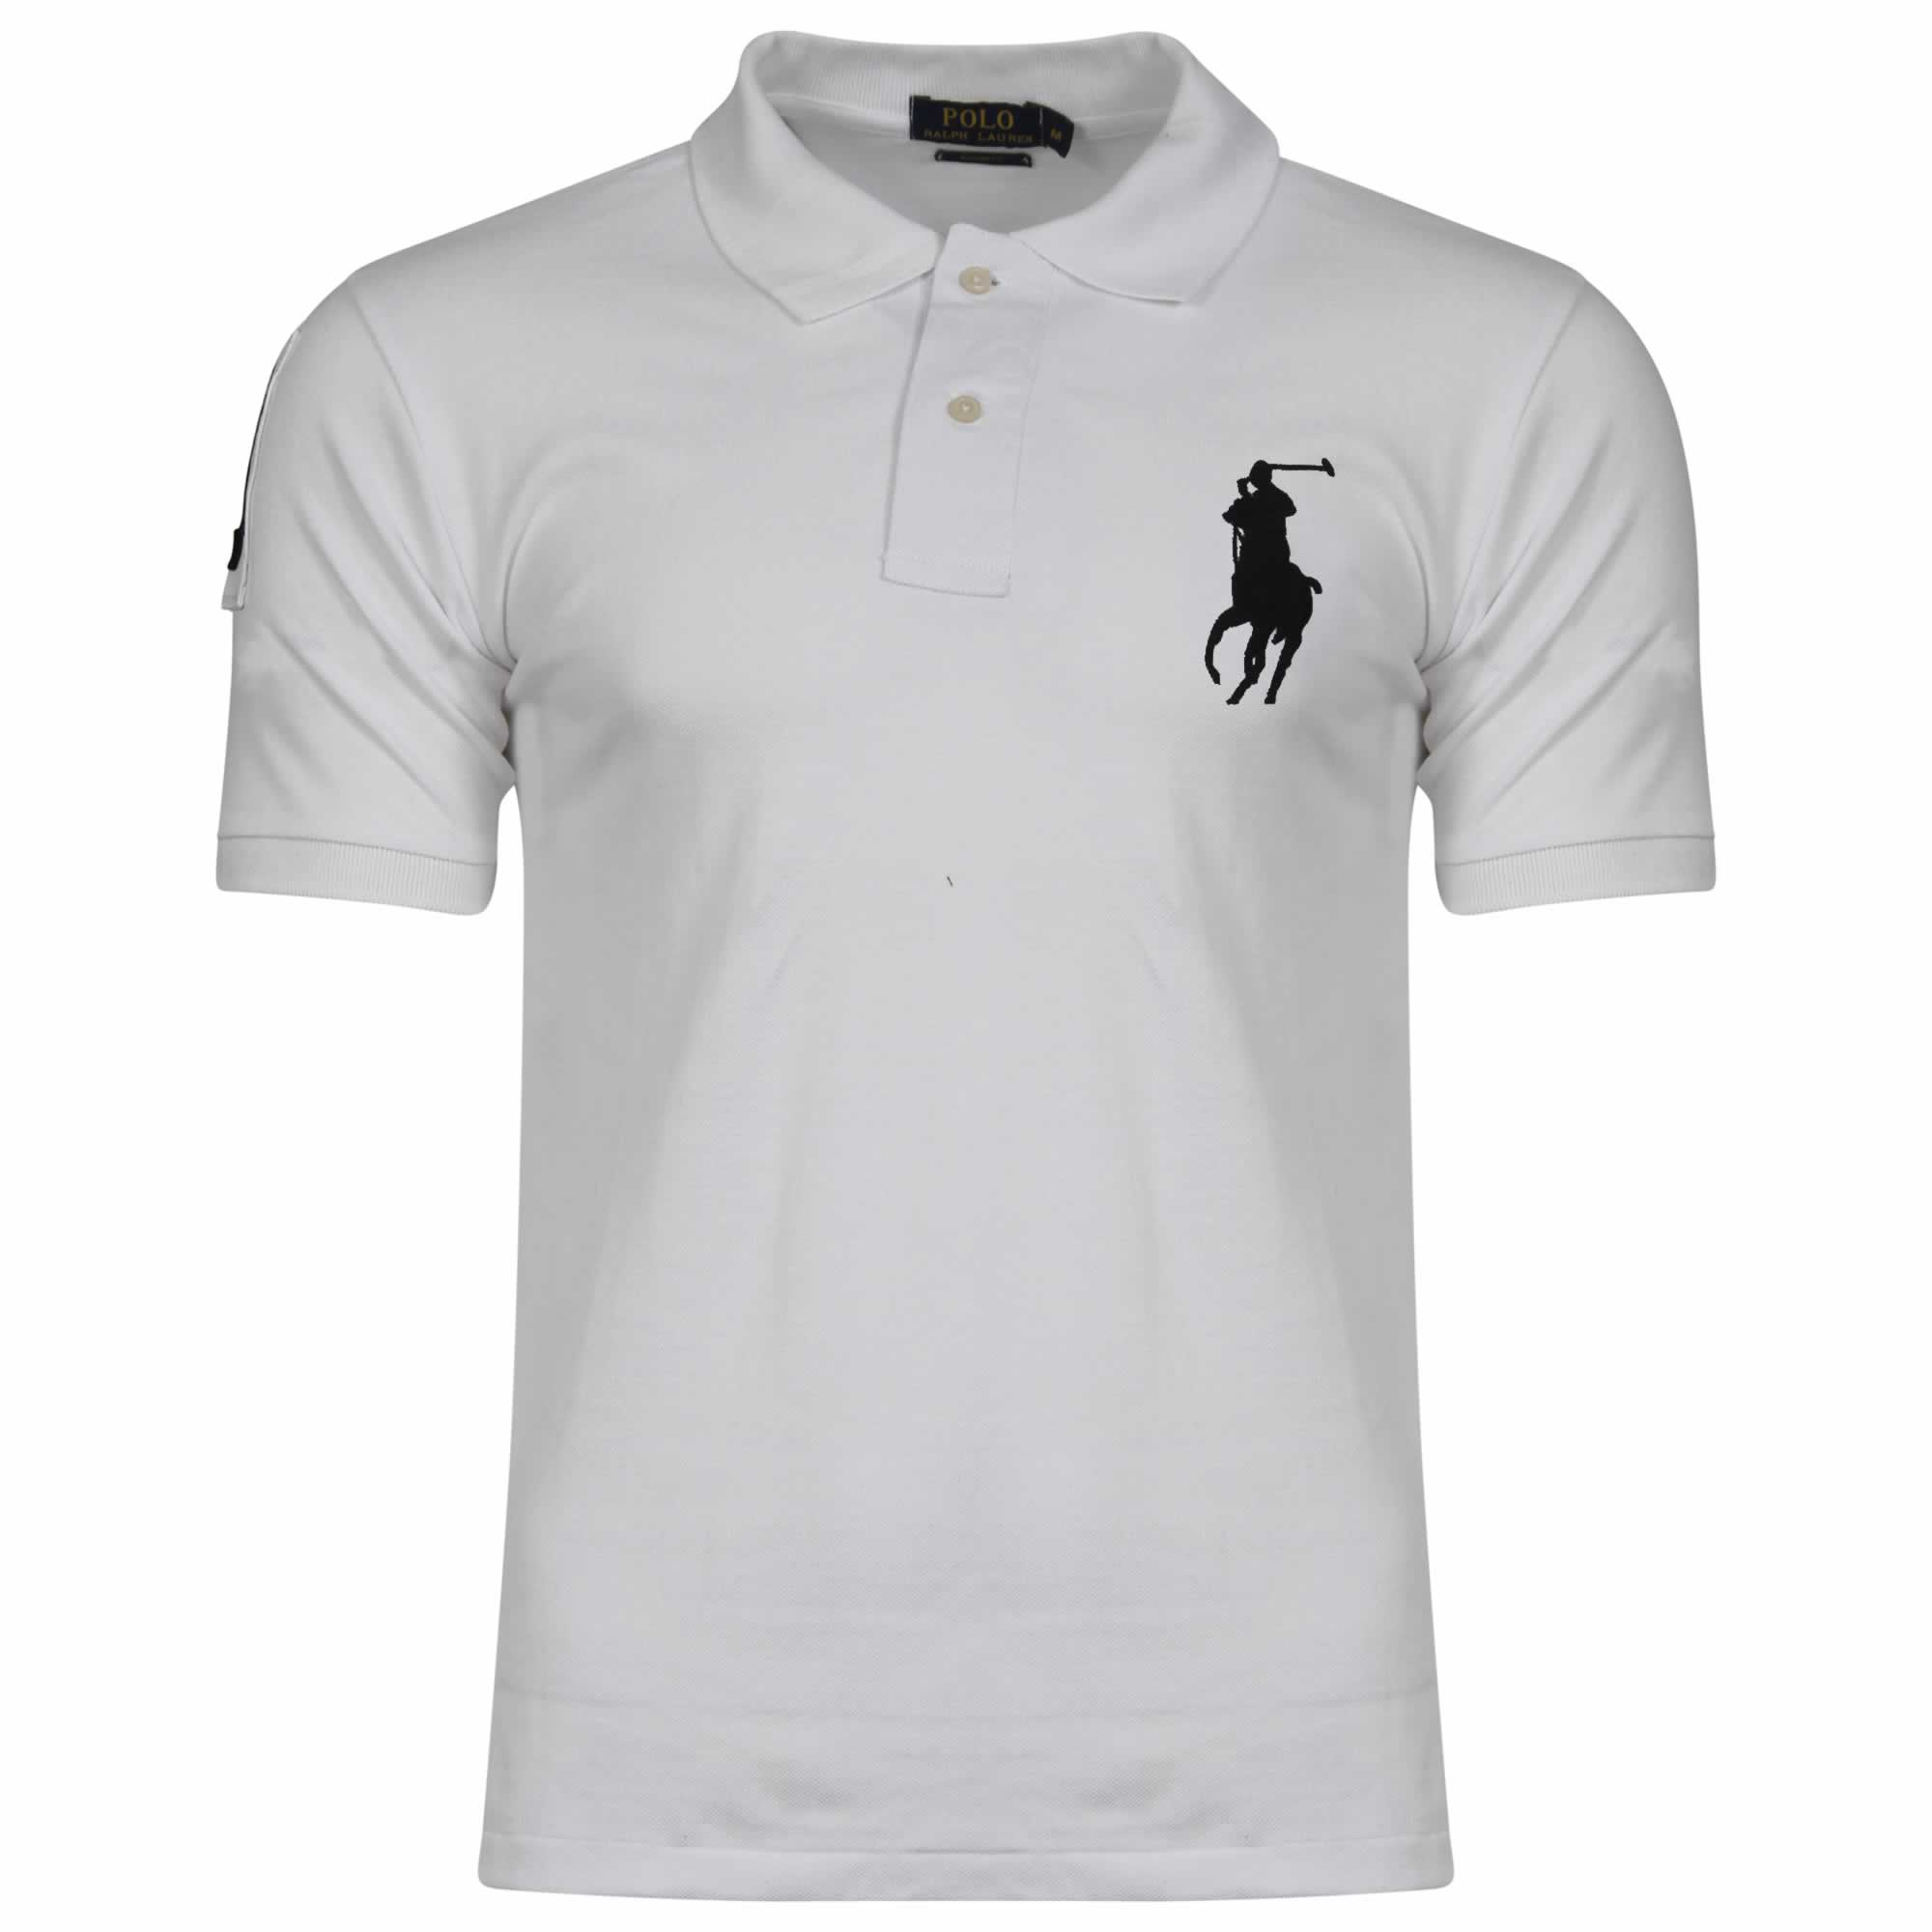 ab046fe8 Ralph Lauren Short Sleeve Big Pony. Polo Shirt. Custom Fit in White ...